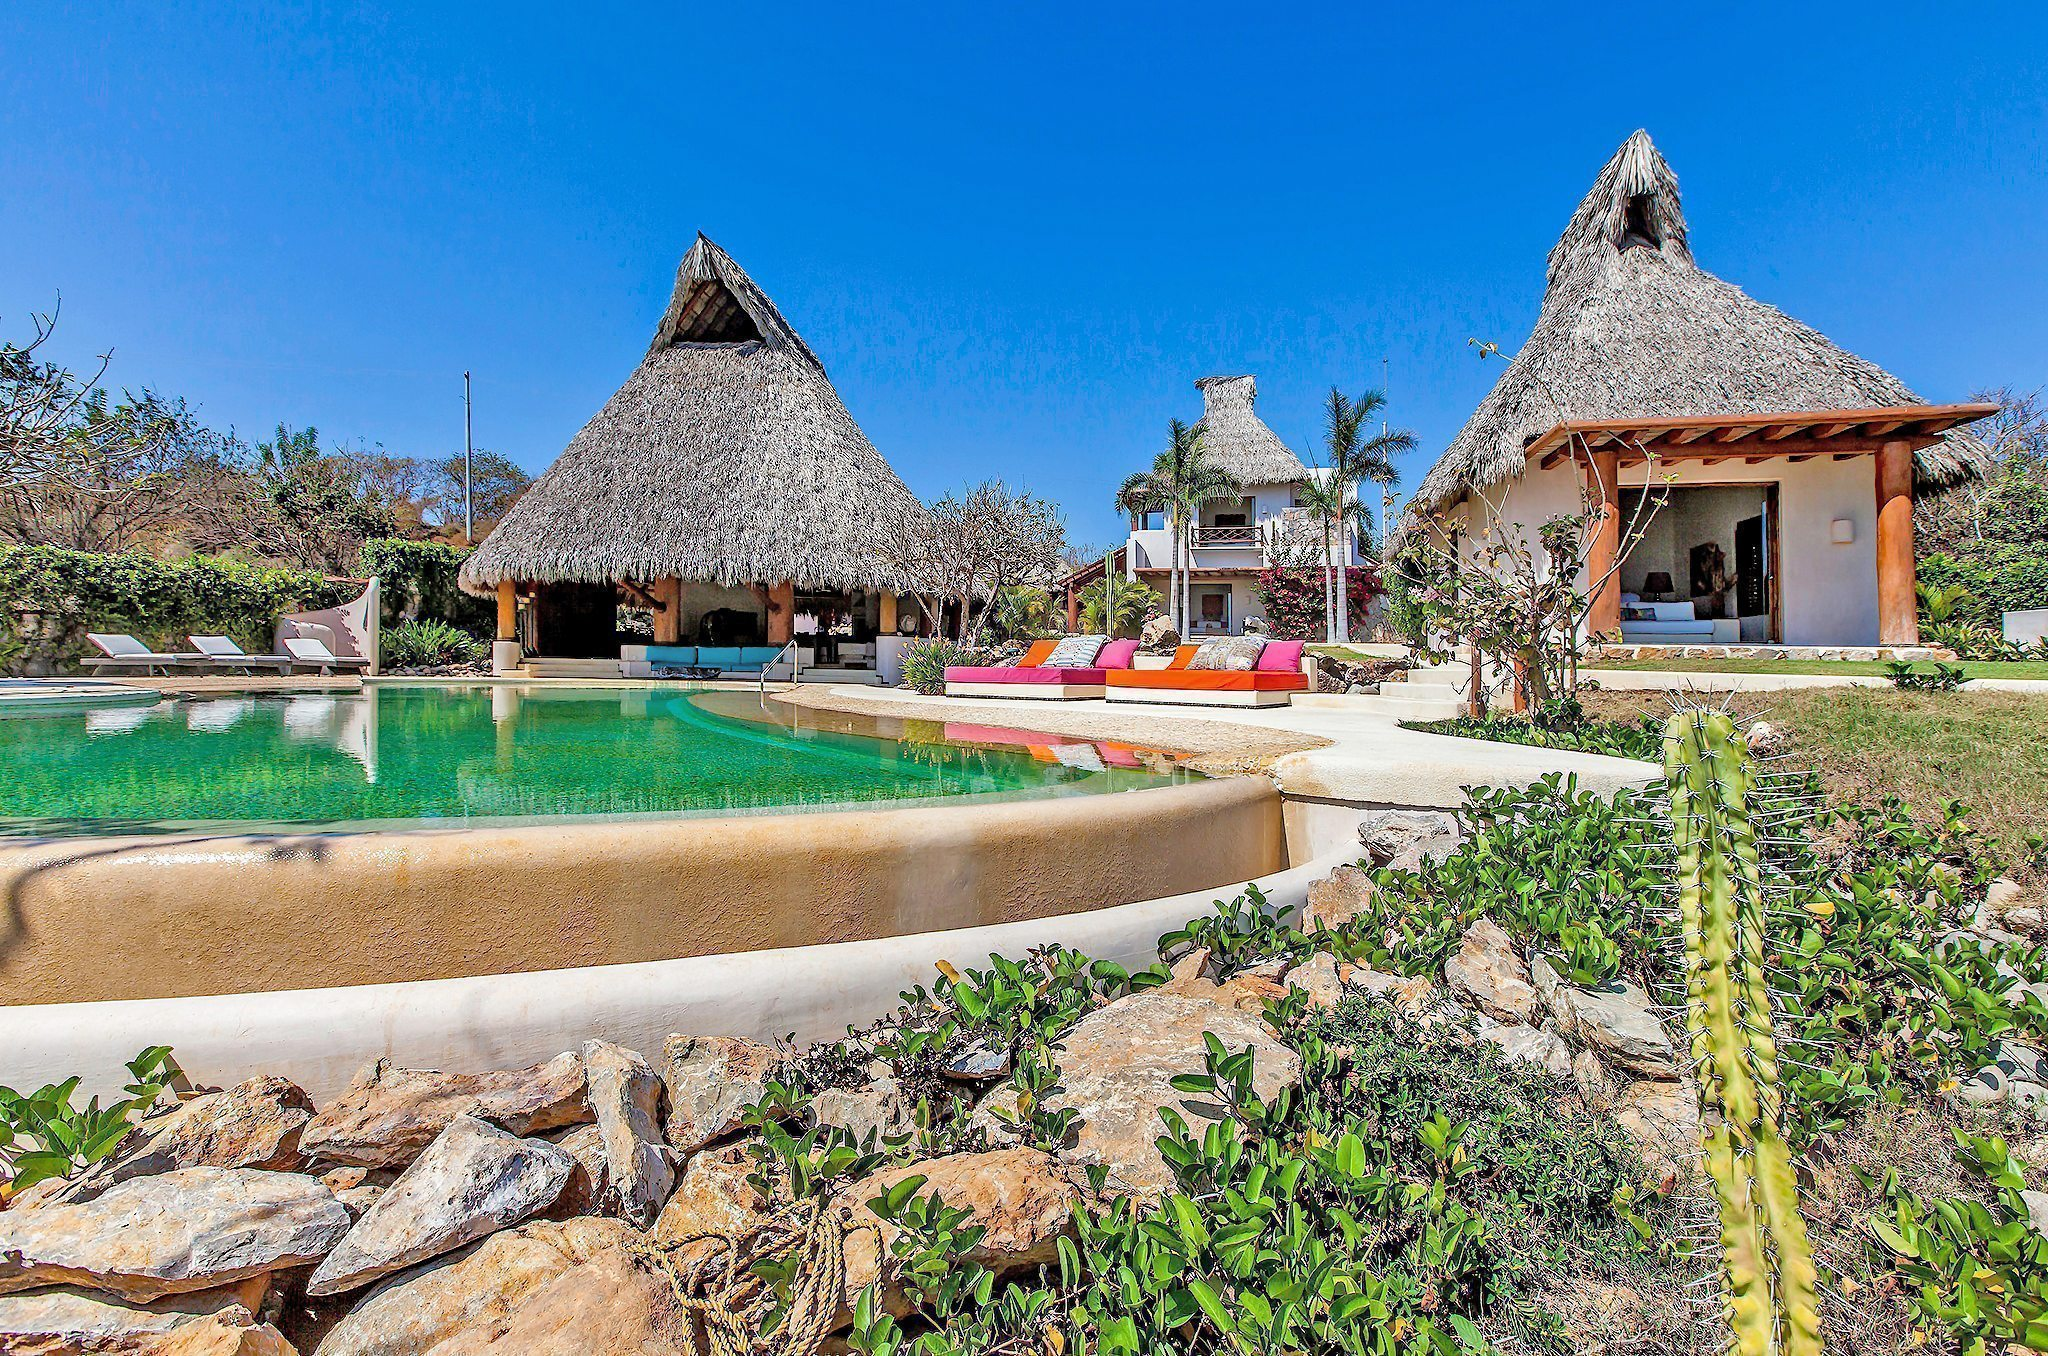 Palapa, Pool, Poolside Day Bed